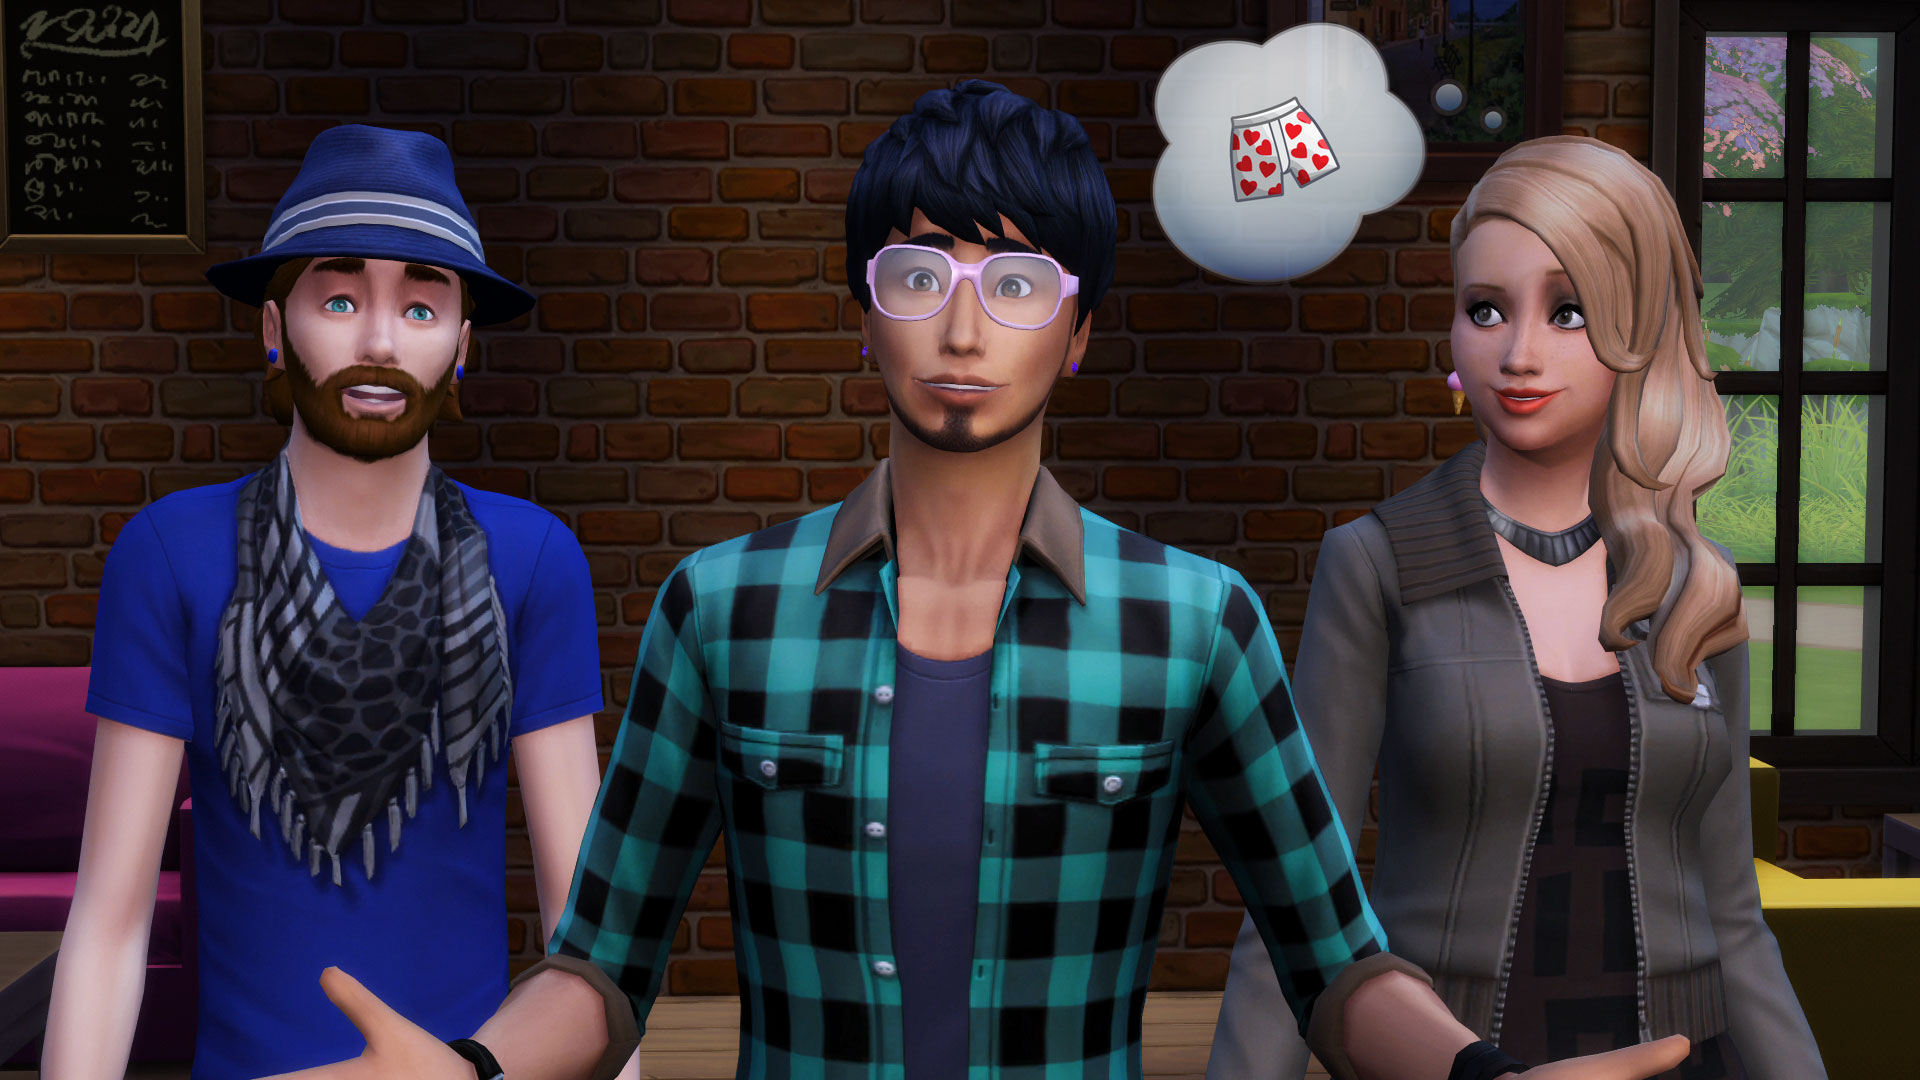 Get weird with The Sims 4!